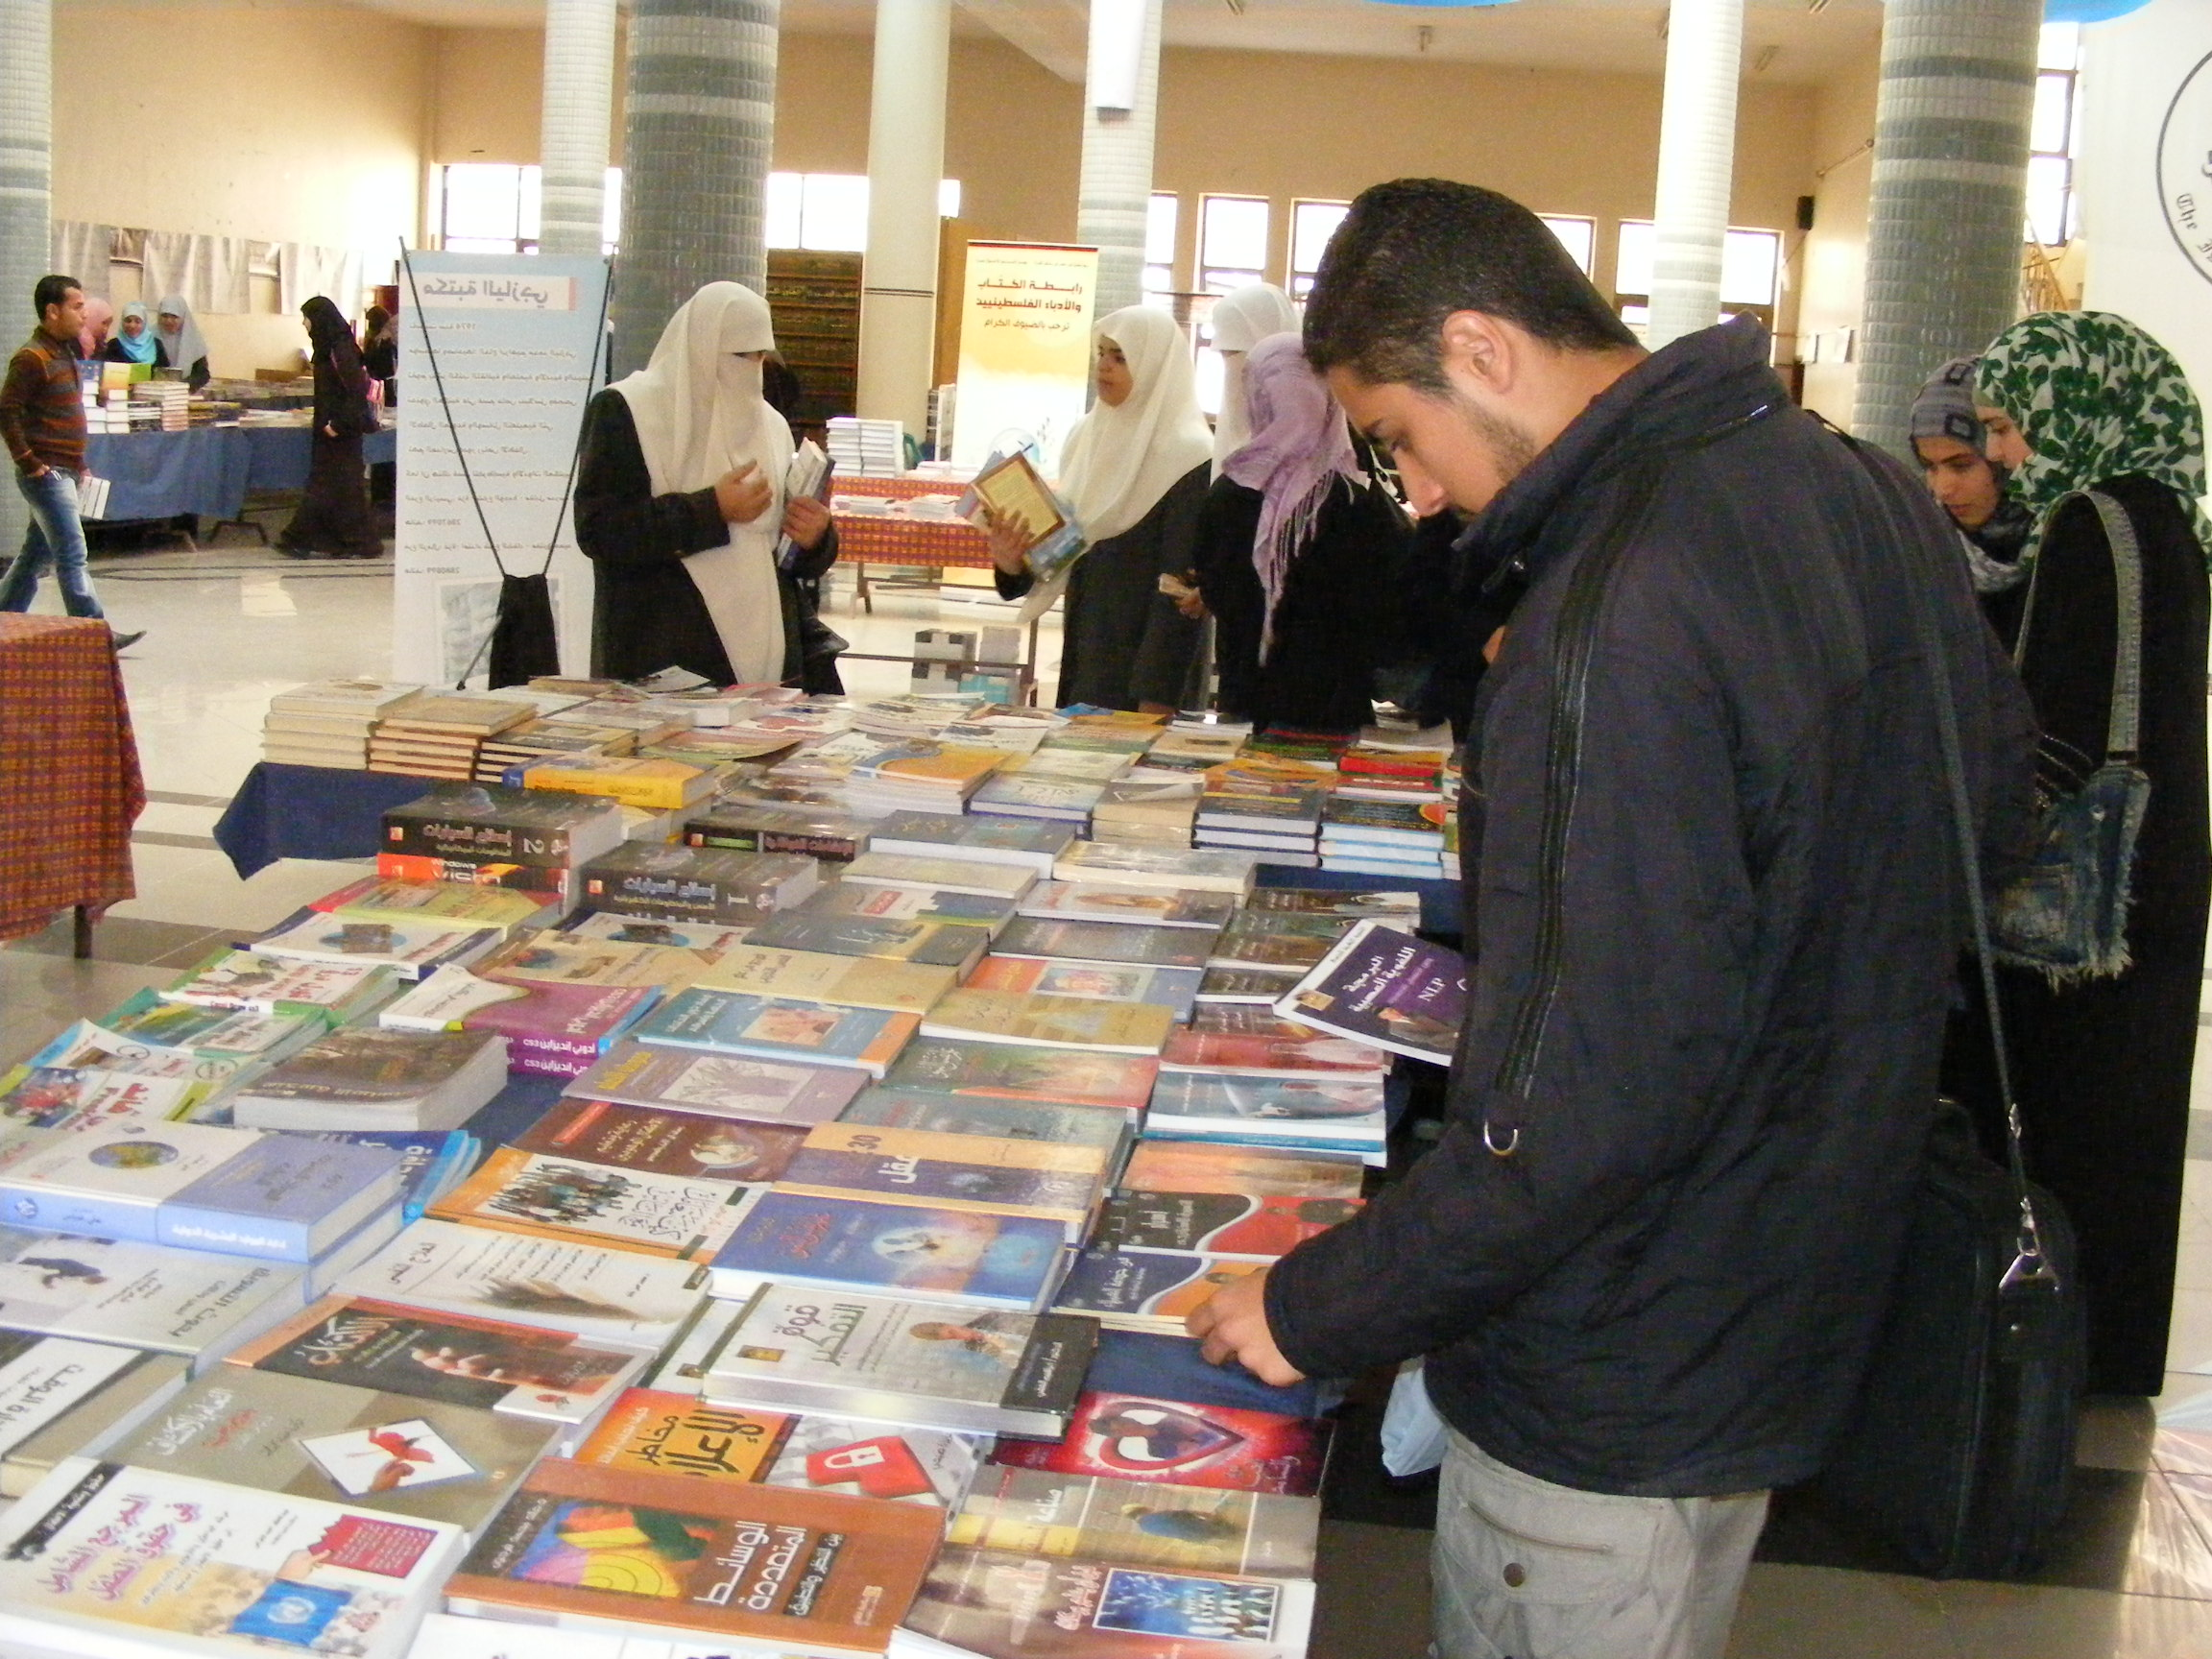 Alexandria still does not have enough spaces to hold international fairs and exhibitions (Photo from Egyptian Streets)